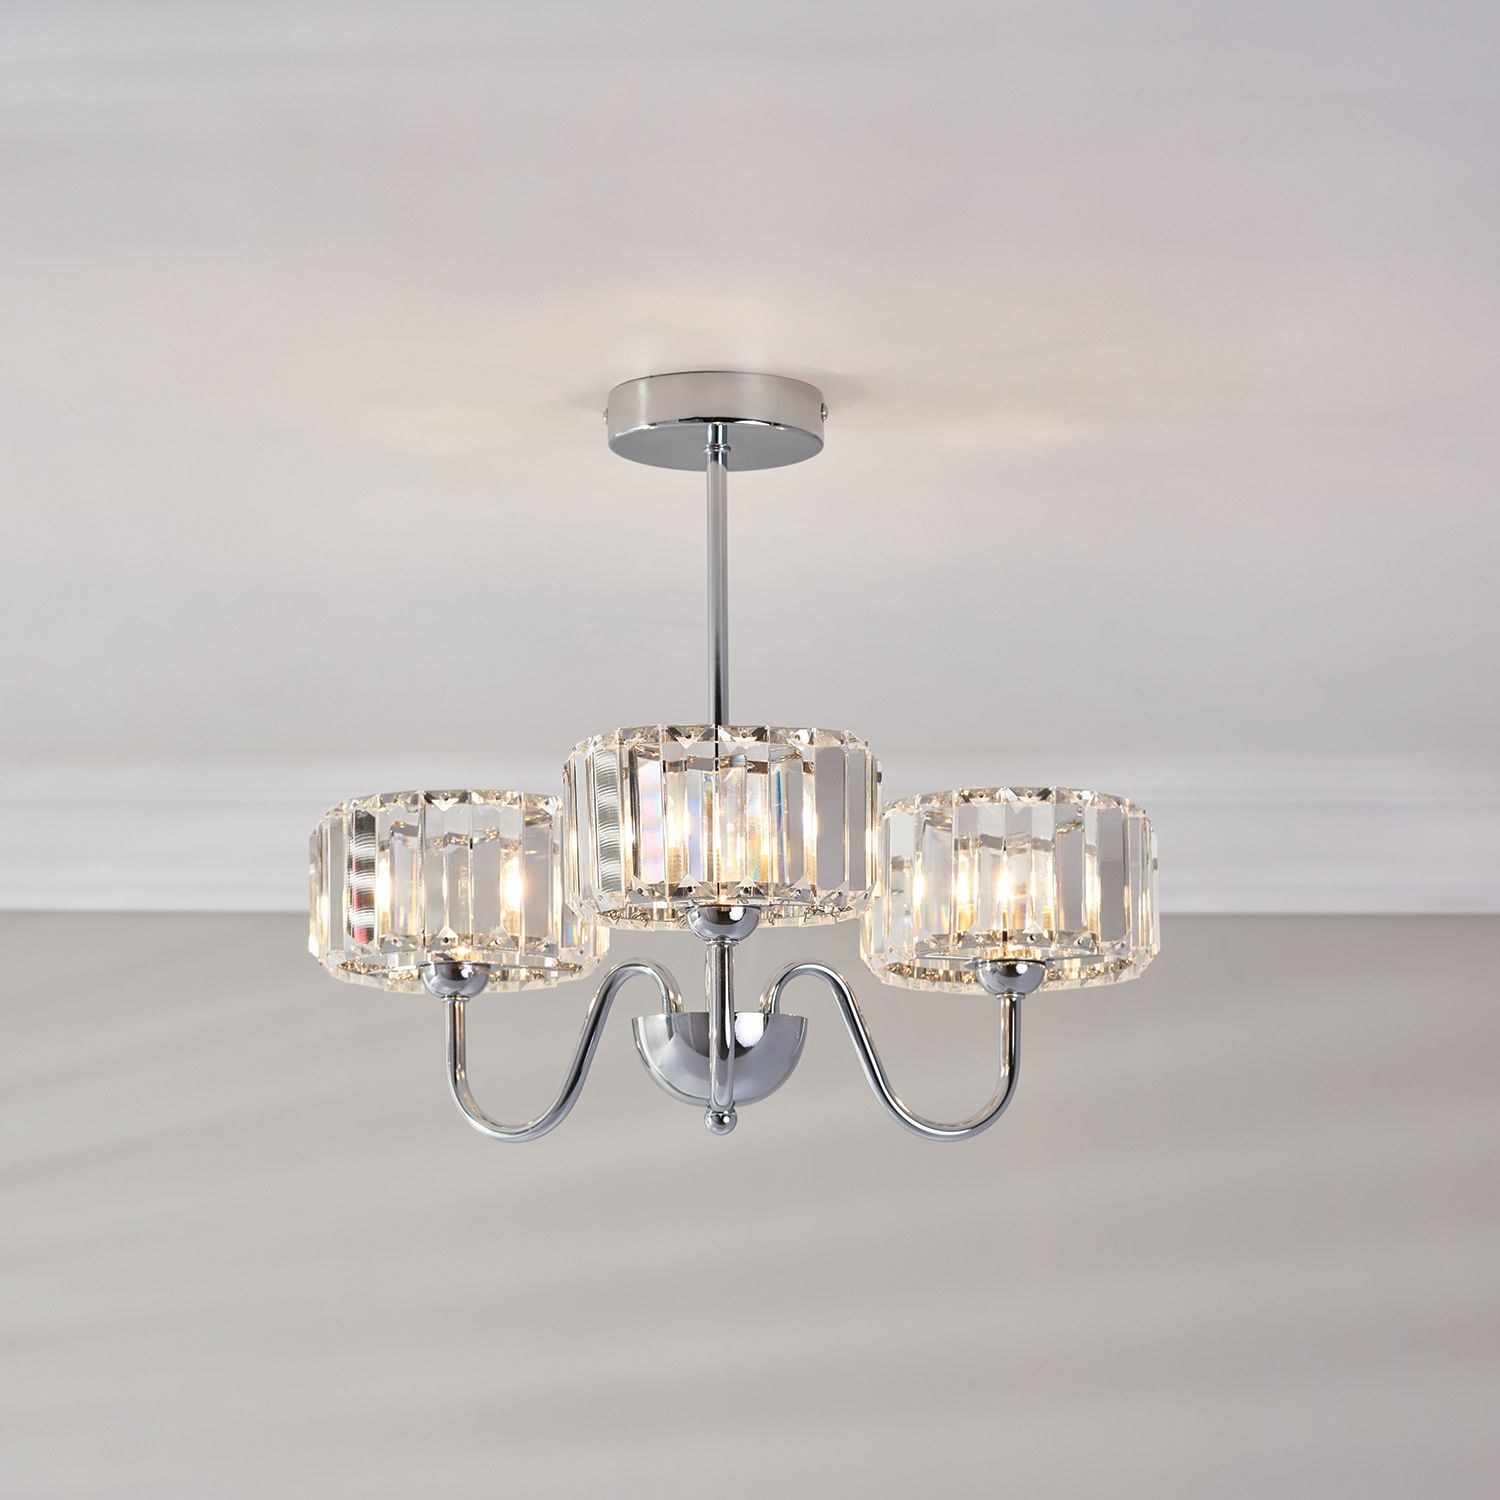 lounge ceiling lighting. Isla 3 Light Fitting Chrome Lounge Ceiling Lighting T